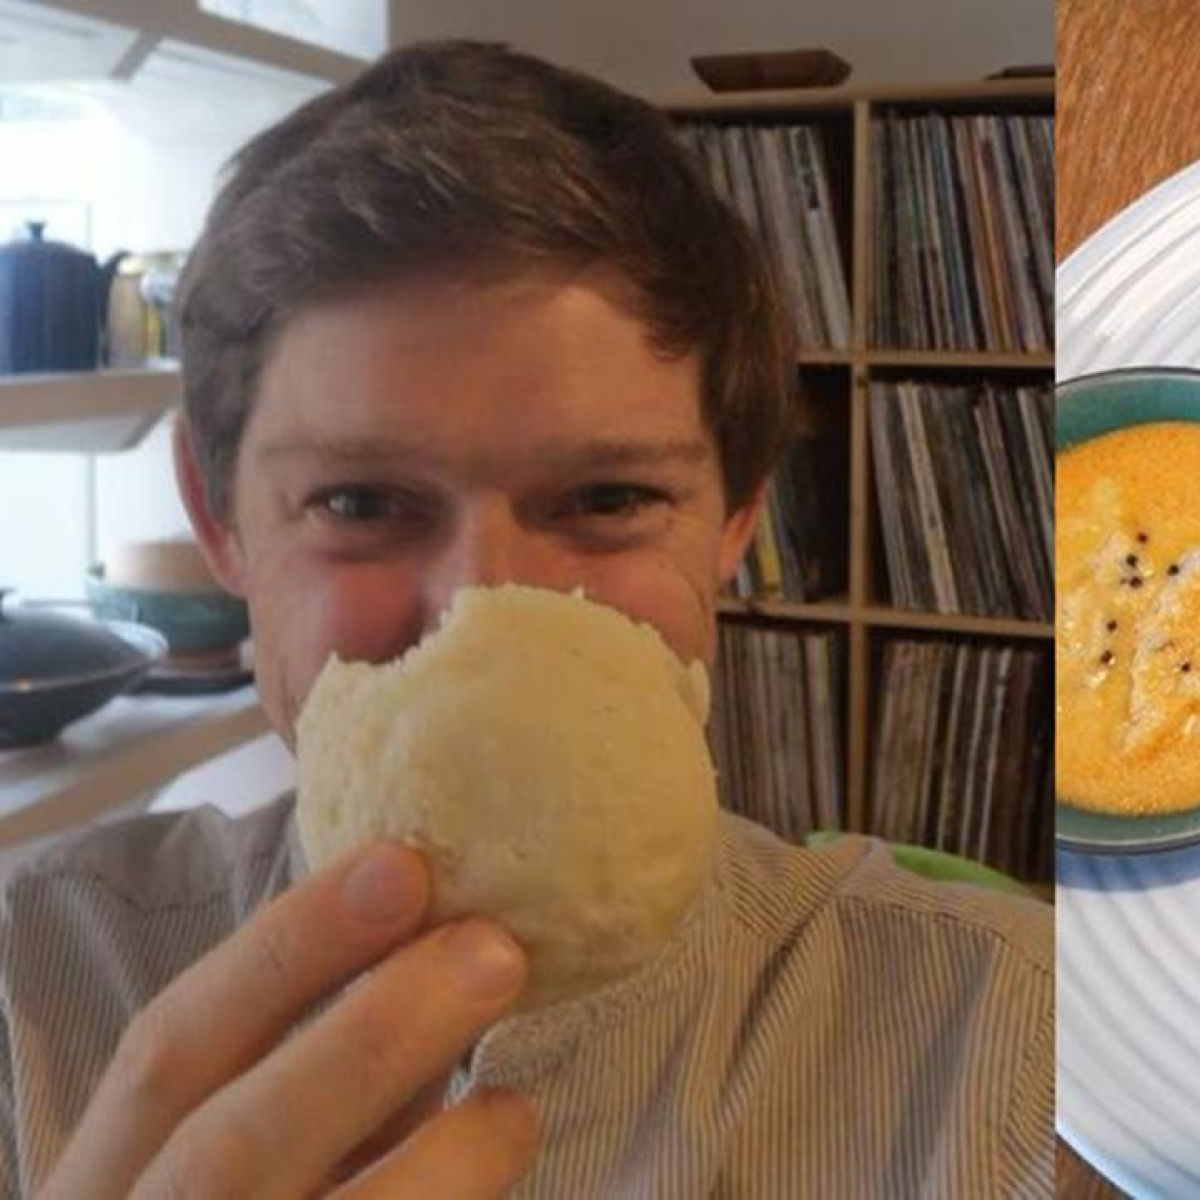 British professor who called idli 'boring' has the internet up in arms